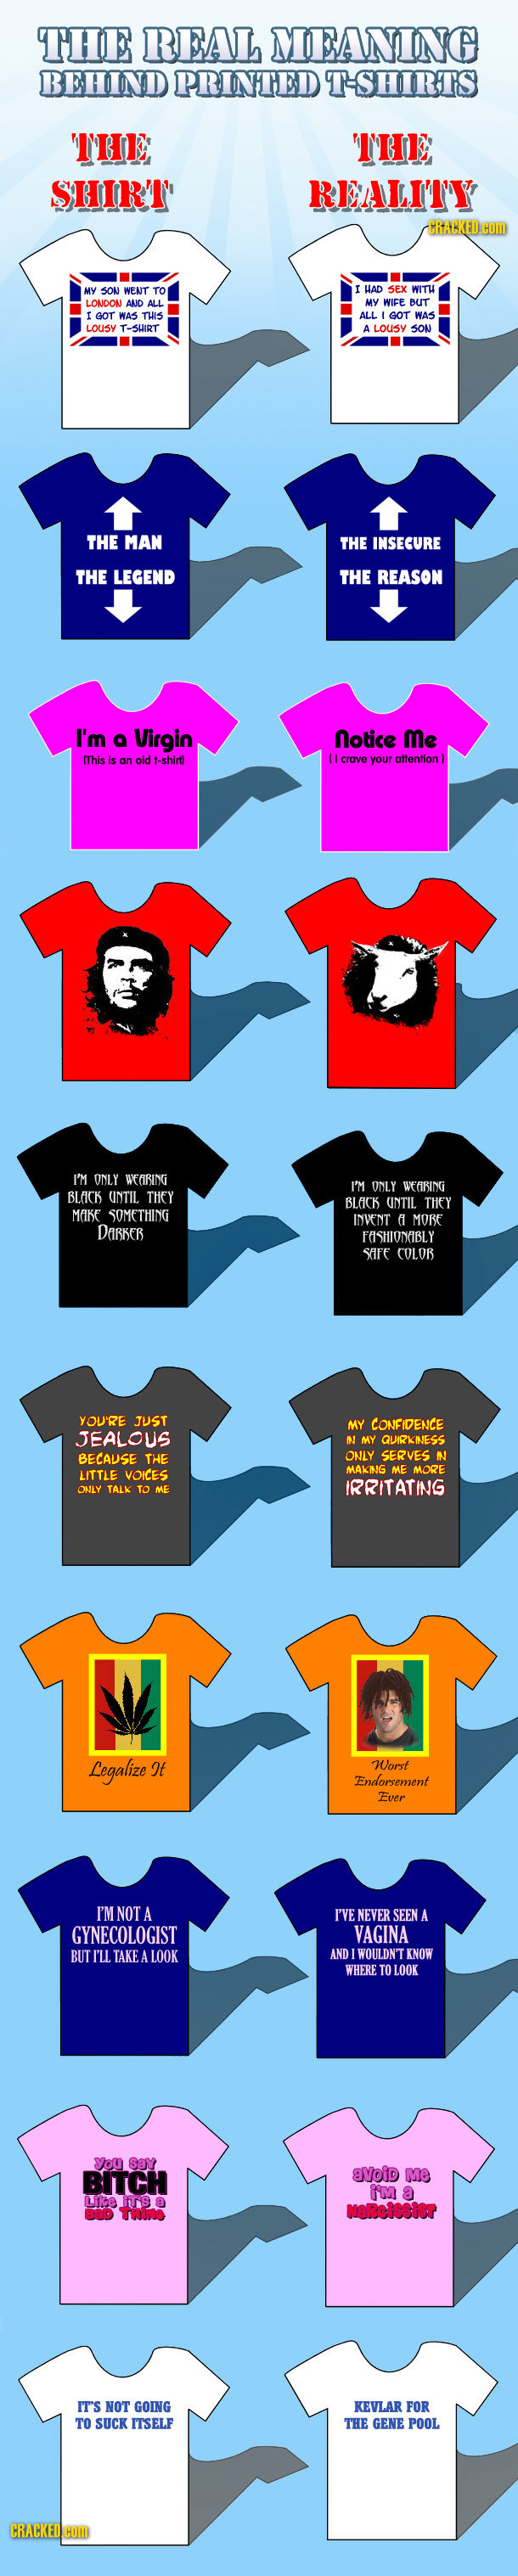 tshirts2 - the real meaning behind t-shirts